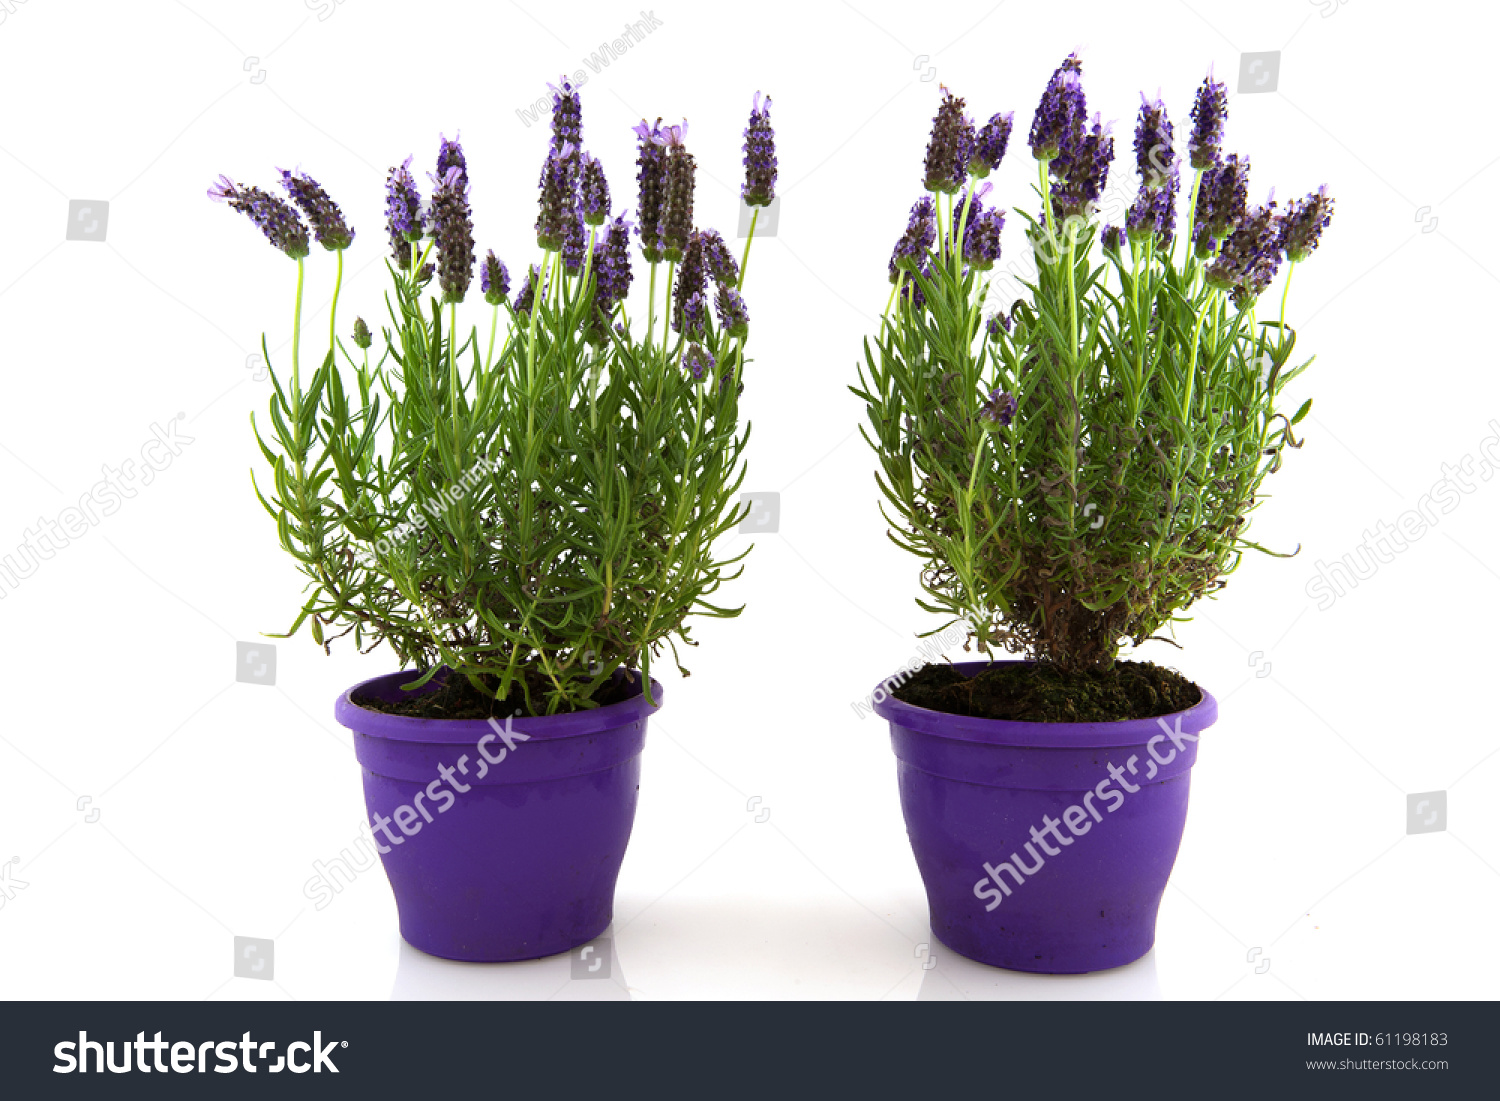 Lavender stoechas plant purple flower pot stock photo 61198183 shutterstock - Growing lavender pot ...